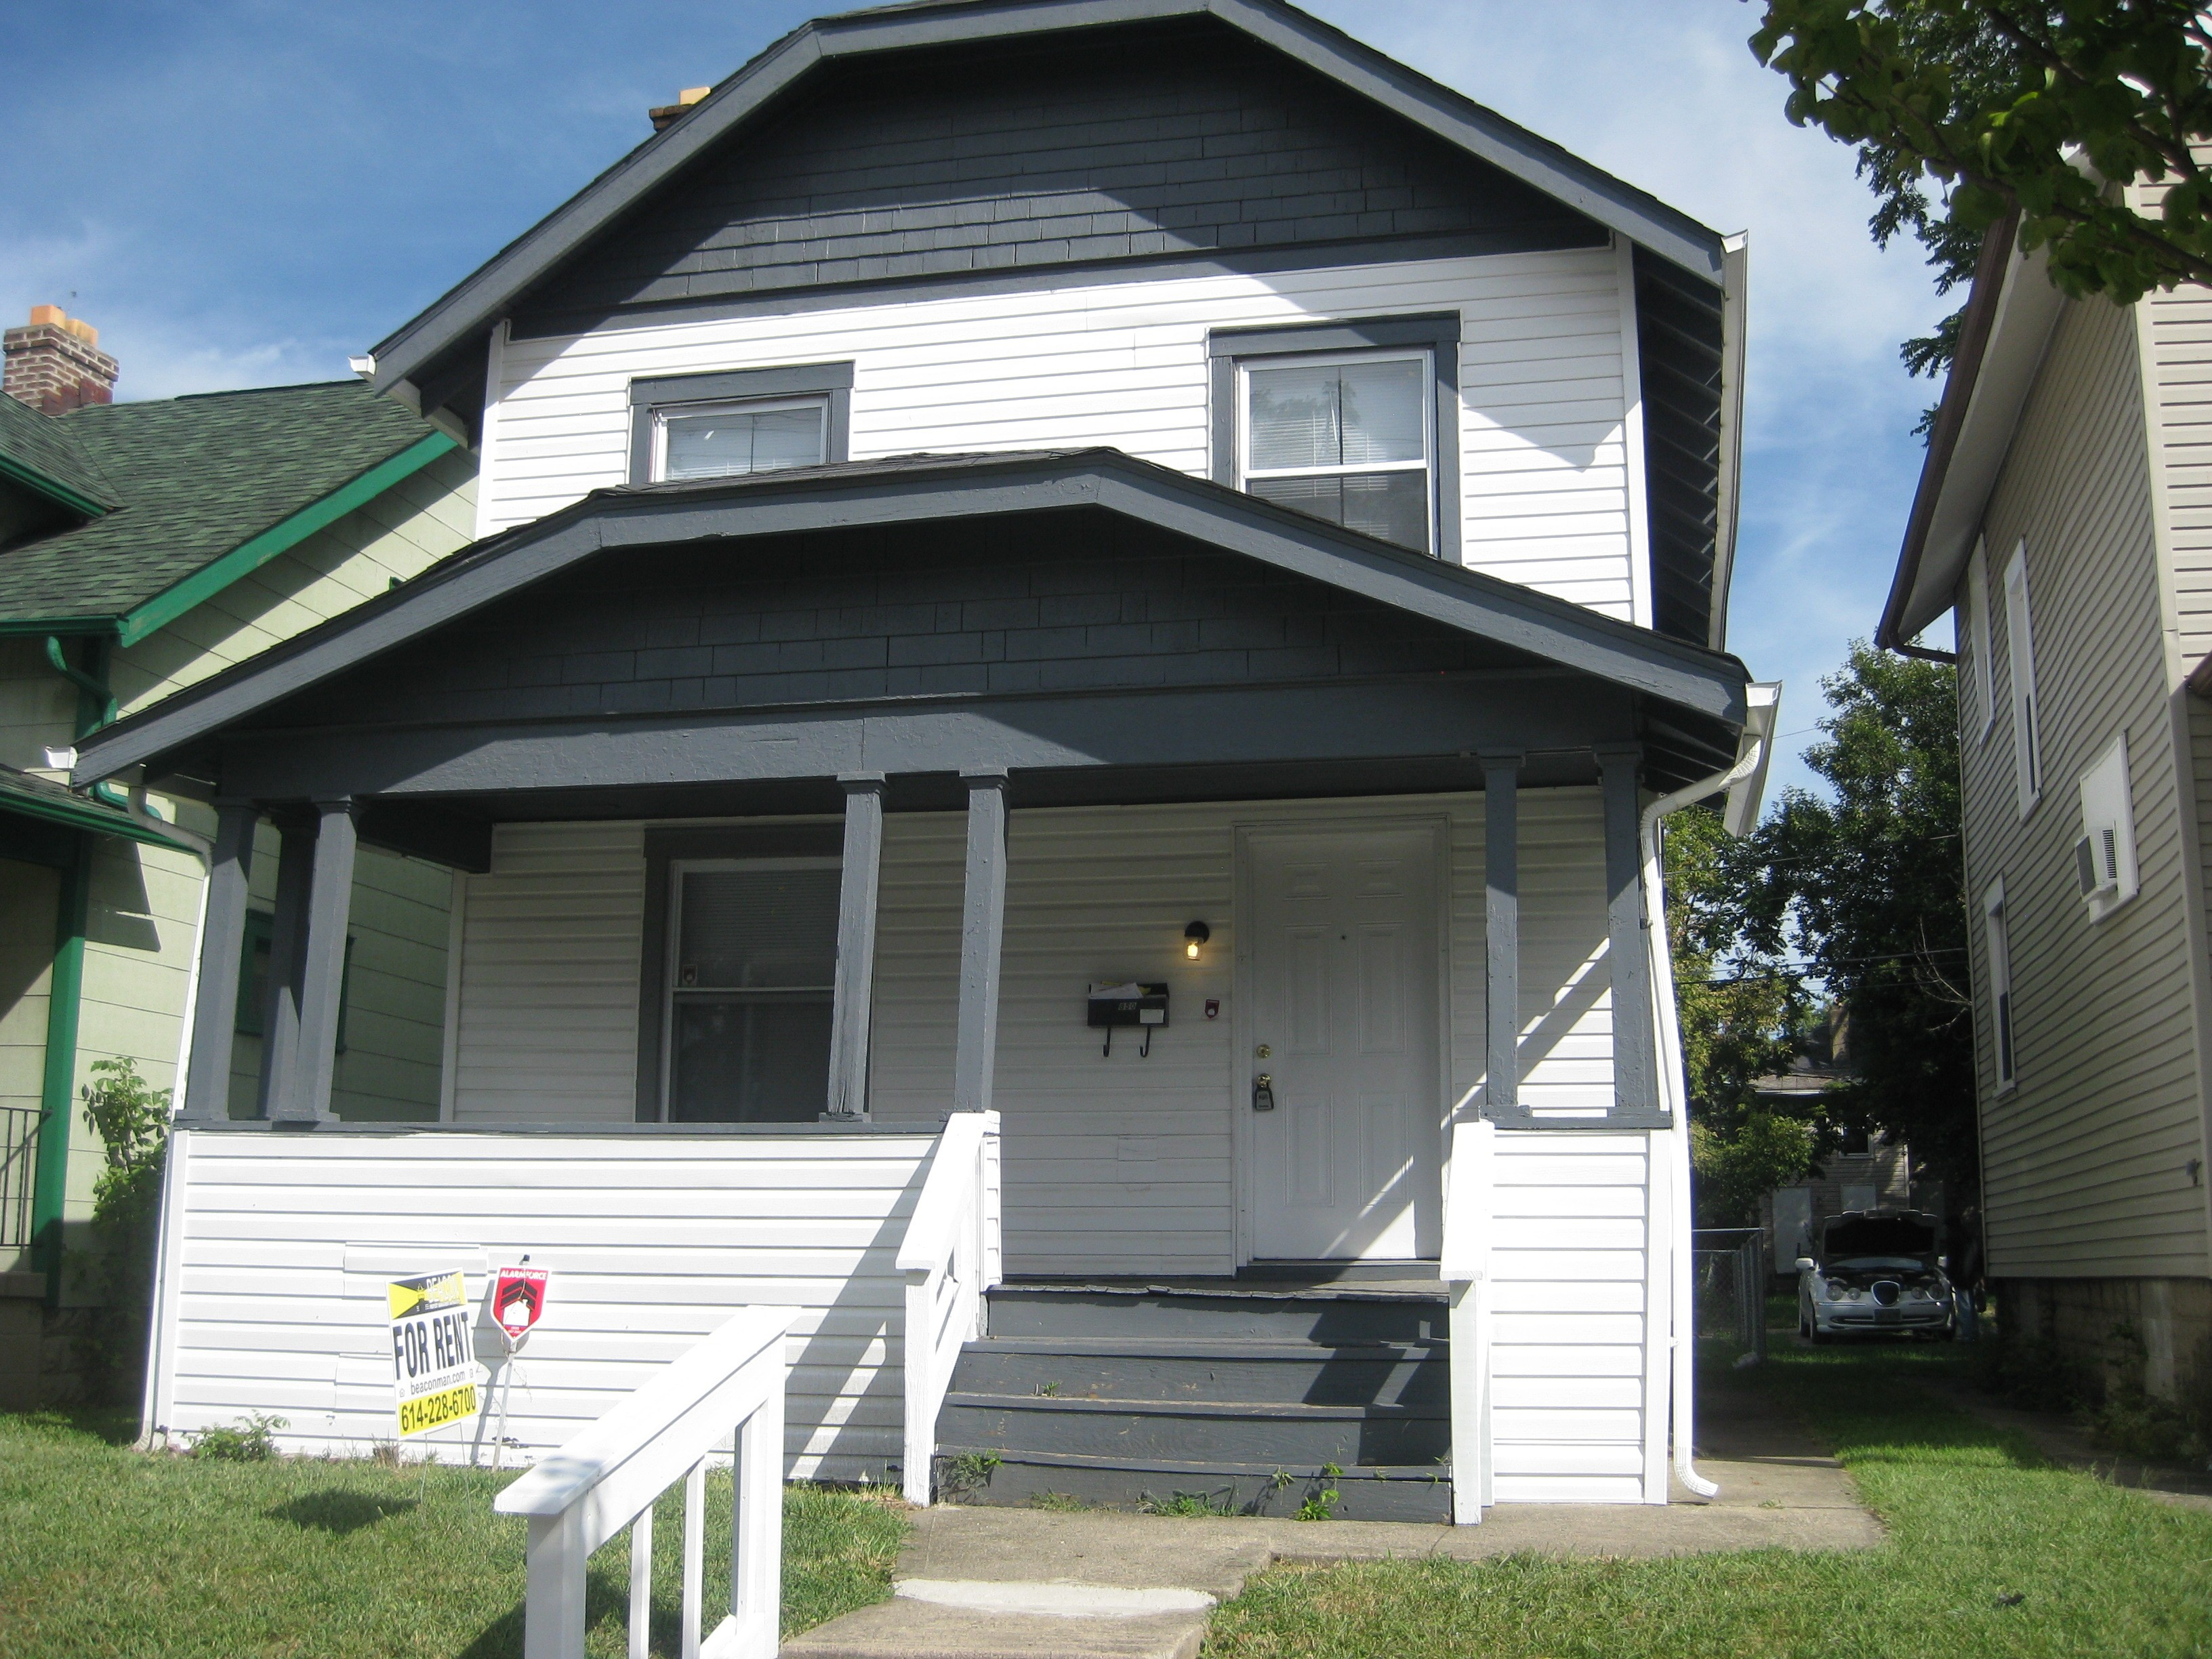 850 E Whittier St Columbus OH 43206 3 Bedroom Apartment For Rent For 700 M